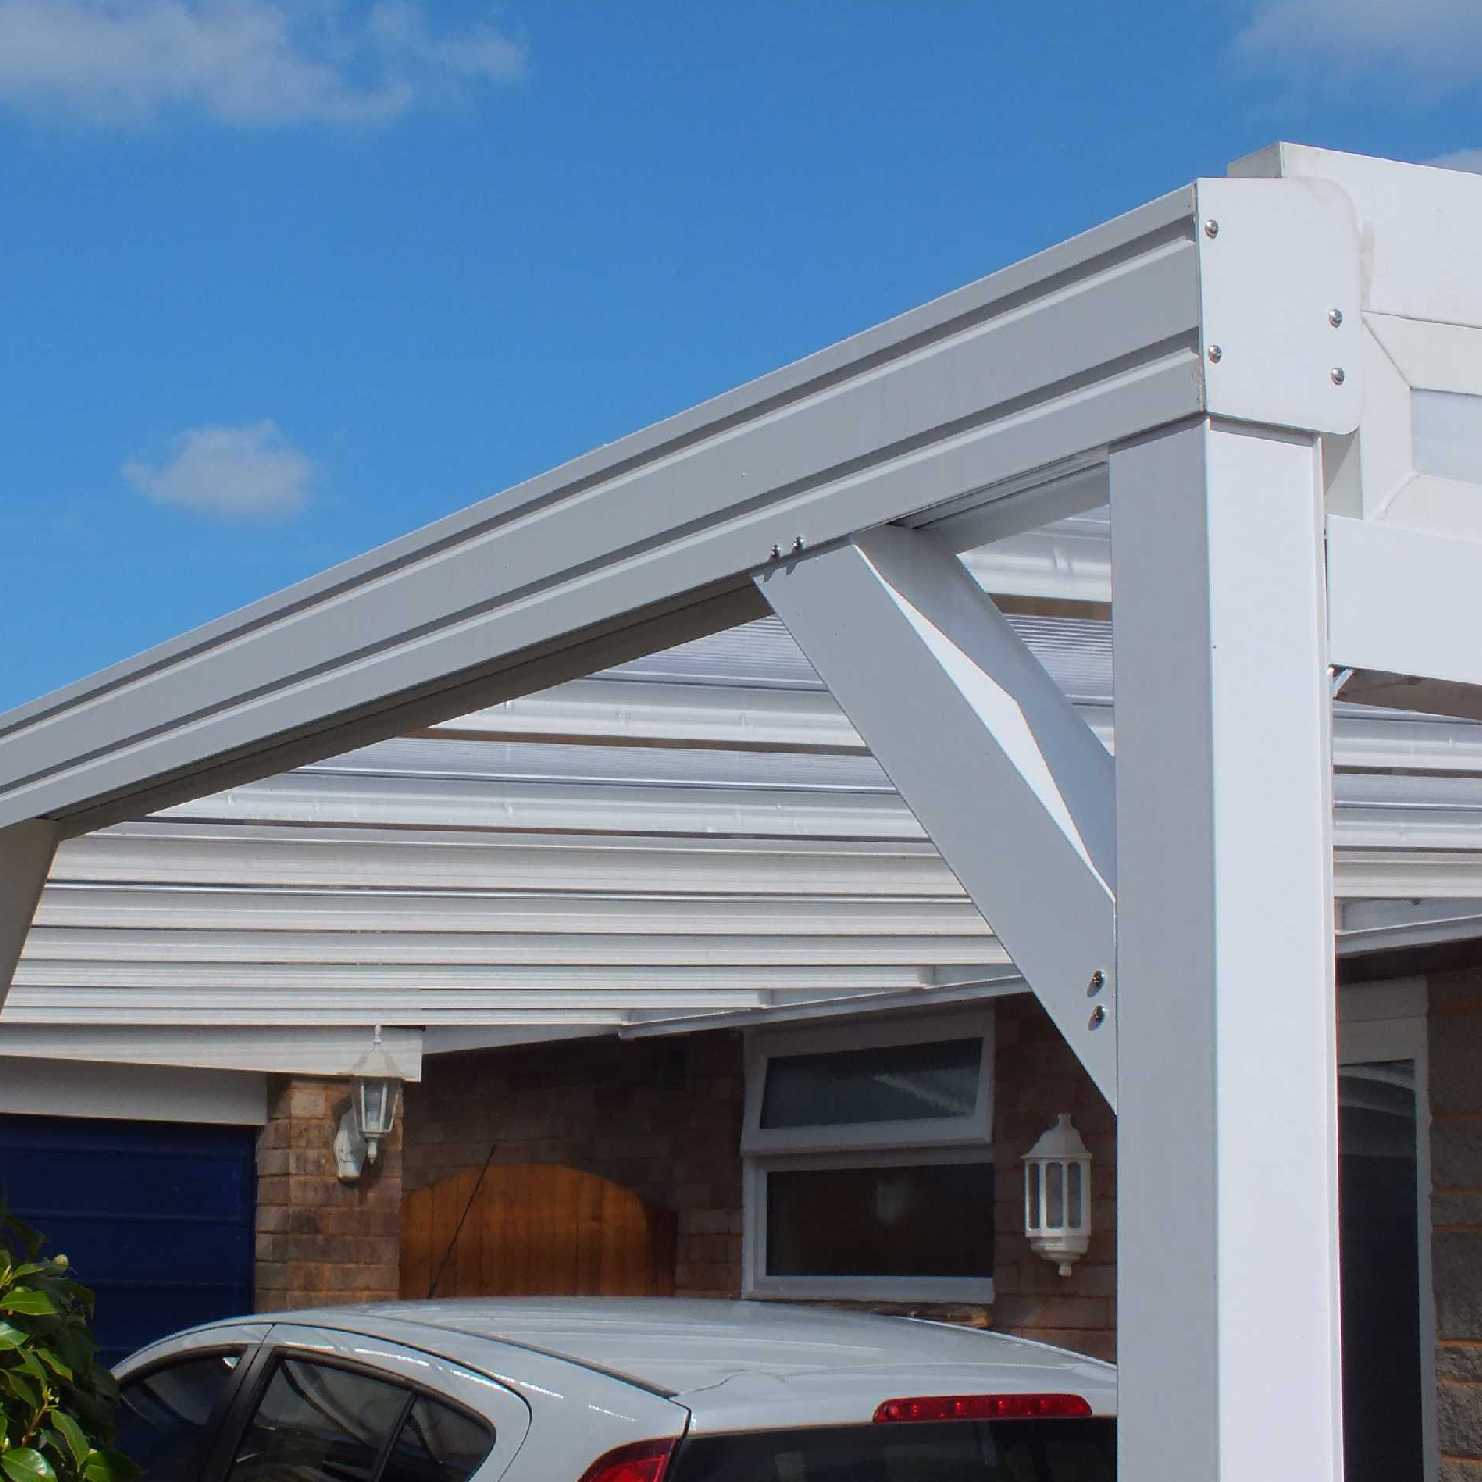 Buy Omega Smart White Lean-To Canopy with 16mm Polycarbonate Glazing - 6.0m (W) x 3.5m (P), (3) Supporting Posts online today